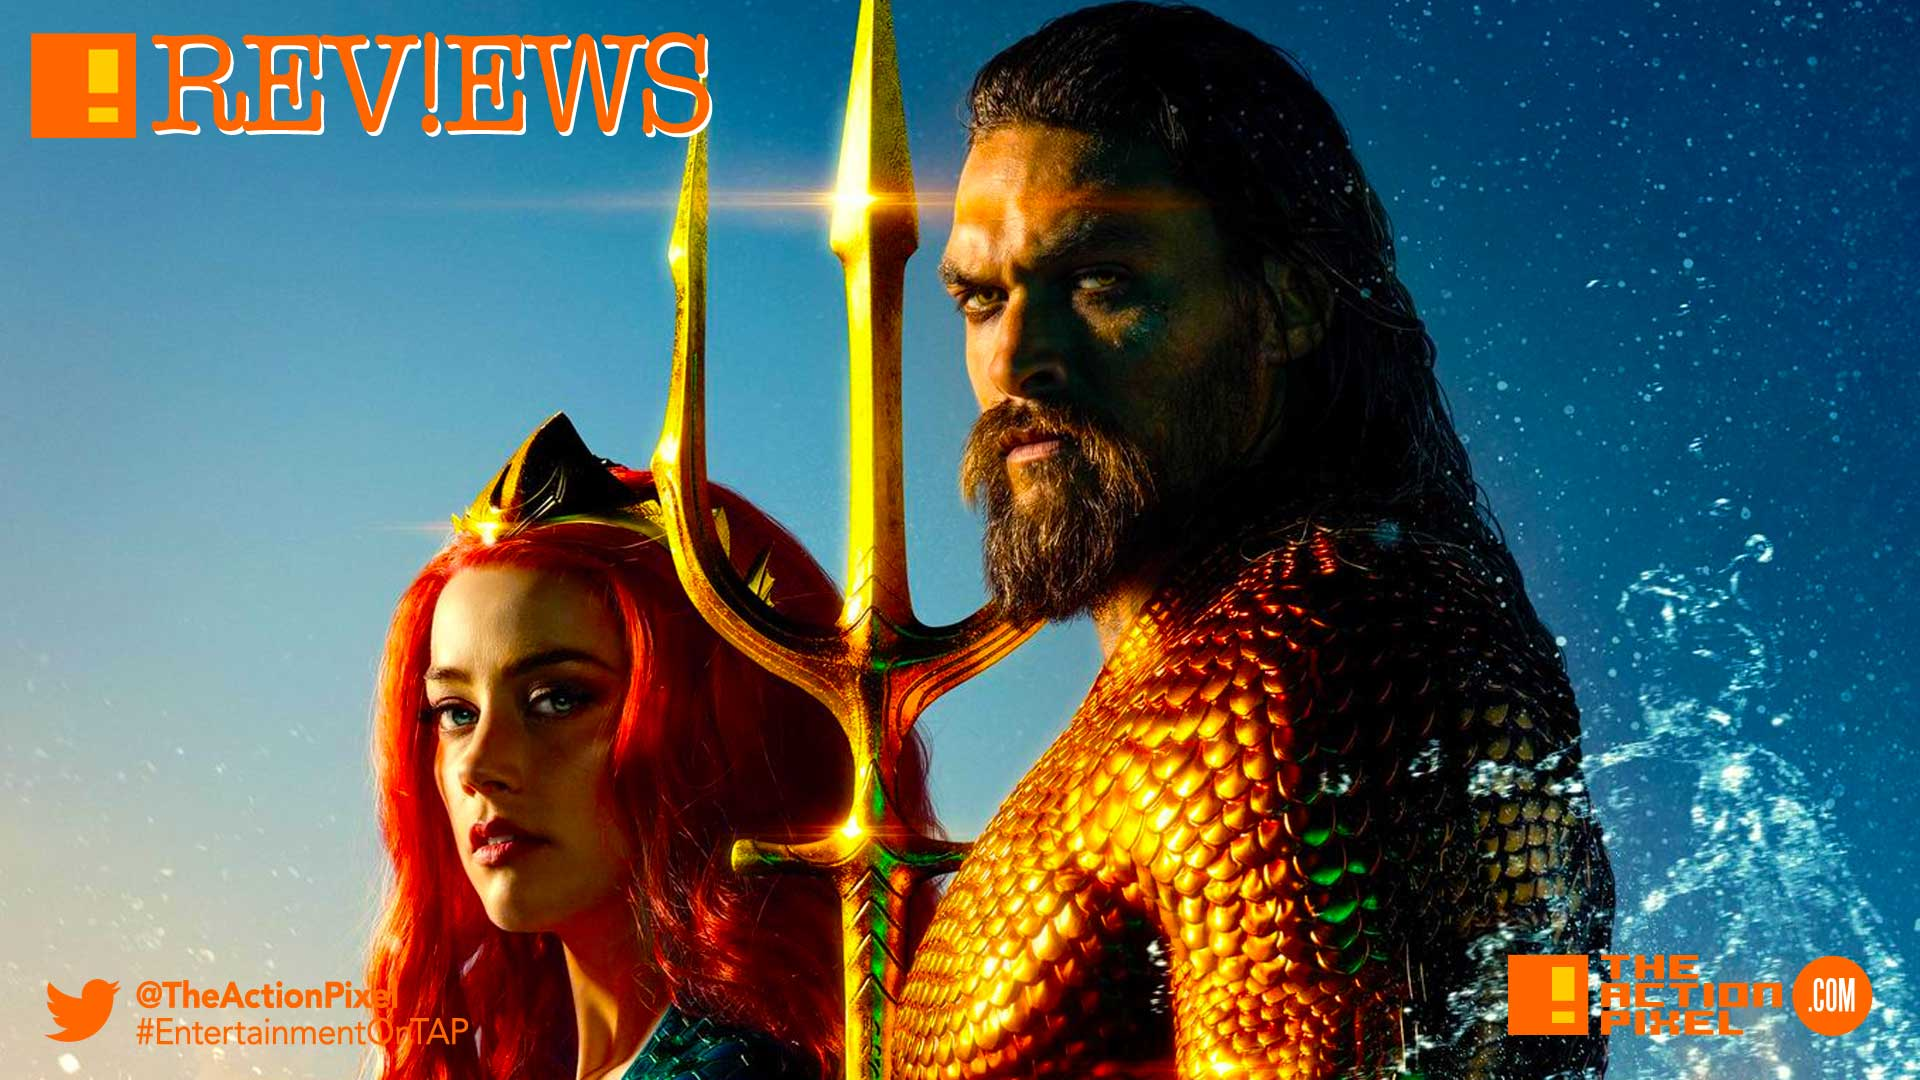 AQUAMAN, vulko, king orm, king nereus, black manta, queen atlanna, princess mera, arthur curry, dc comics, warner bros. pictures, the action pixel, character posters, poster, entertainment on tap, tap reviews ,tapreviews, movie review, film review,